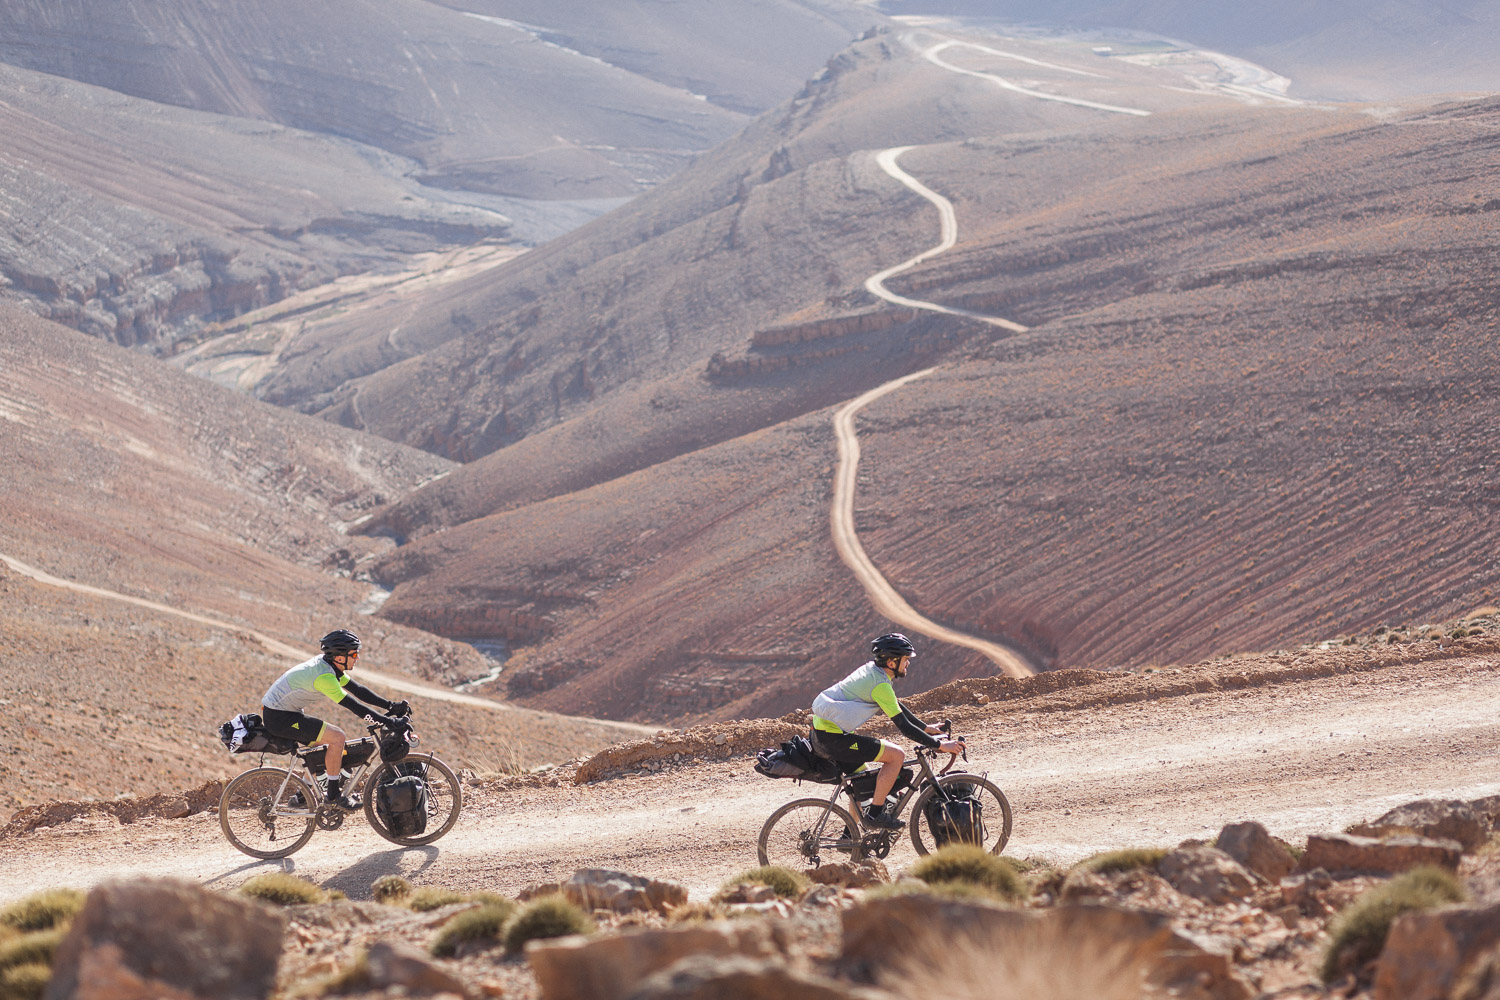 8bar bikes adventures morocco gravel 20151213 0173 bearbeitet 2 - 8bar Adventures - Morocco - High Atlas - Part 2/2